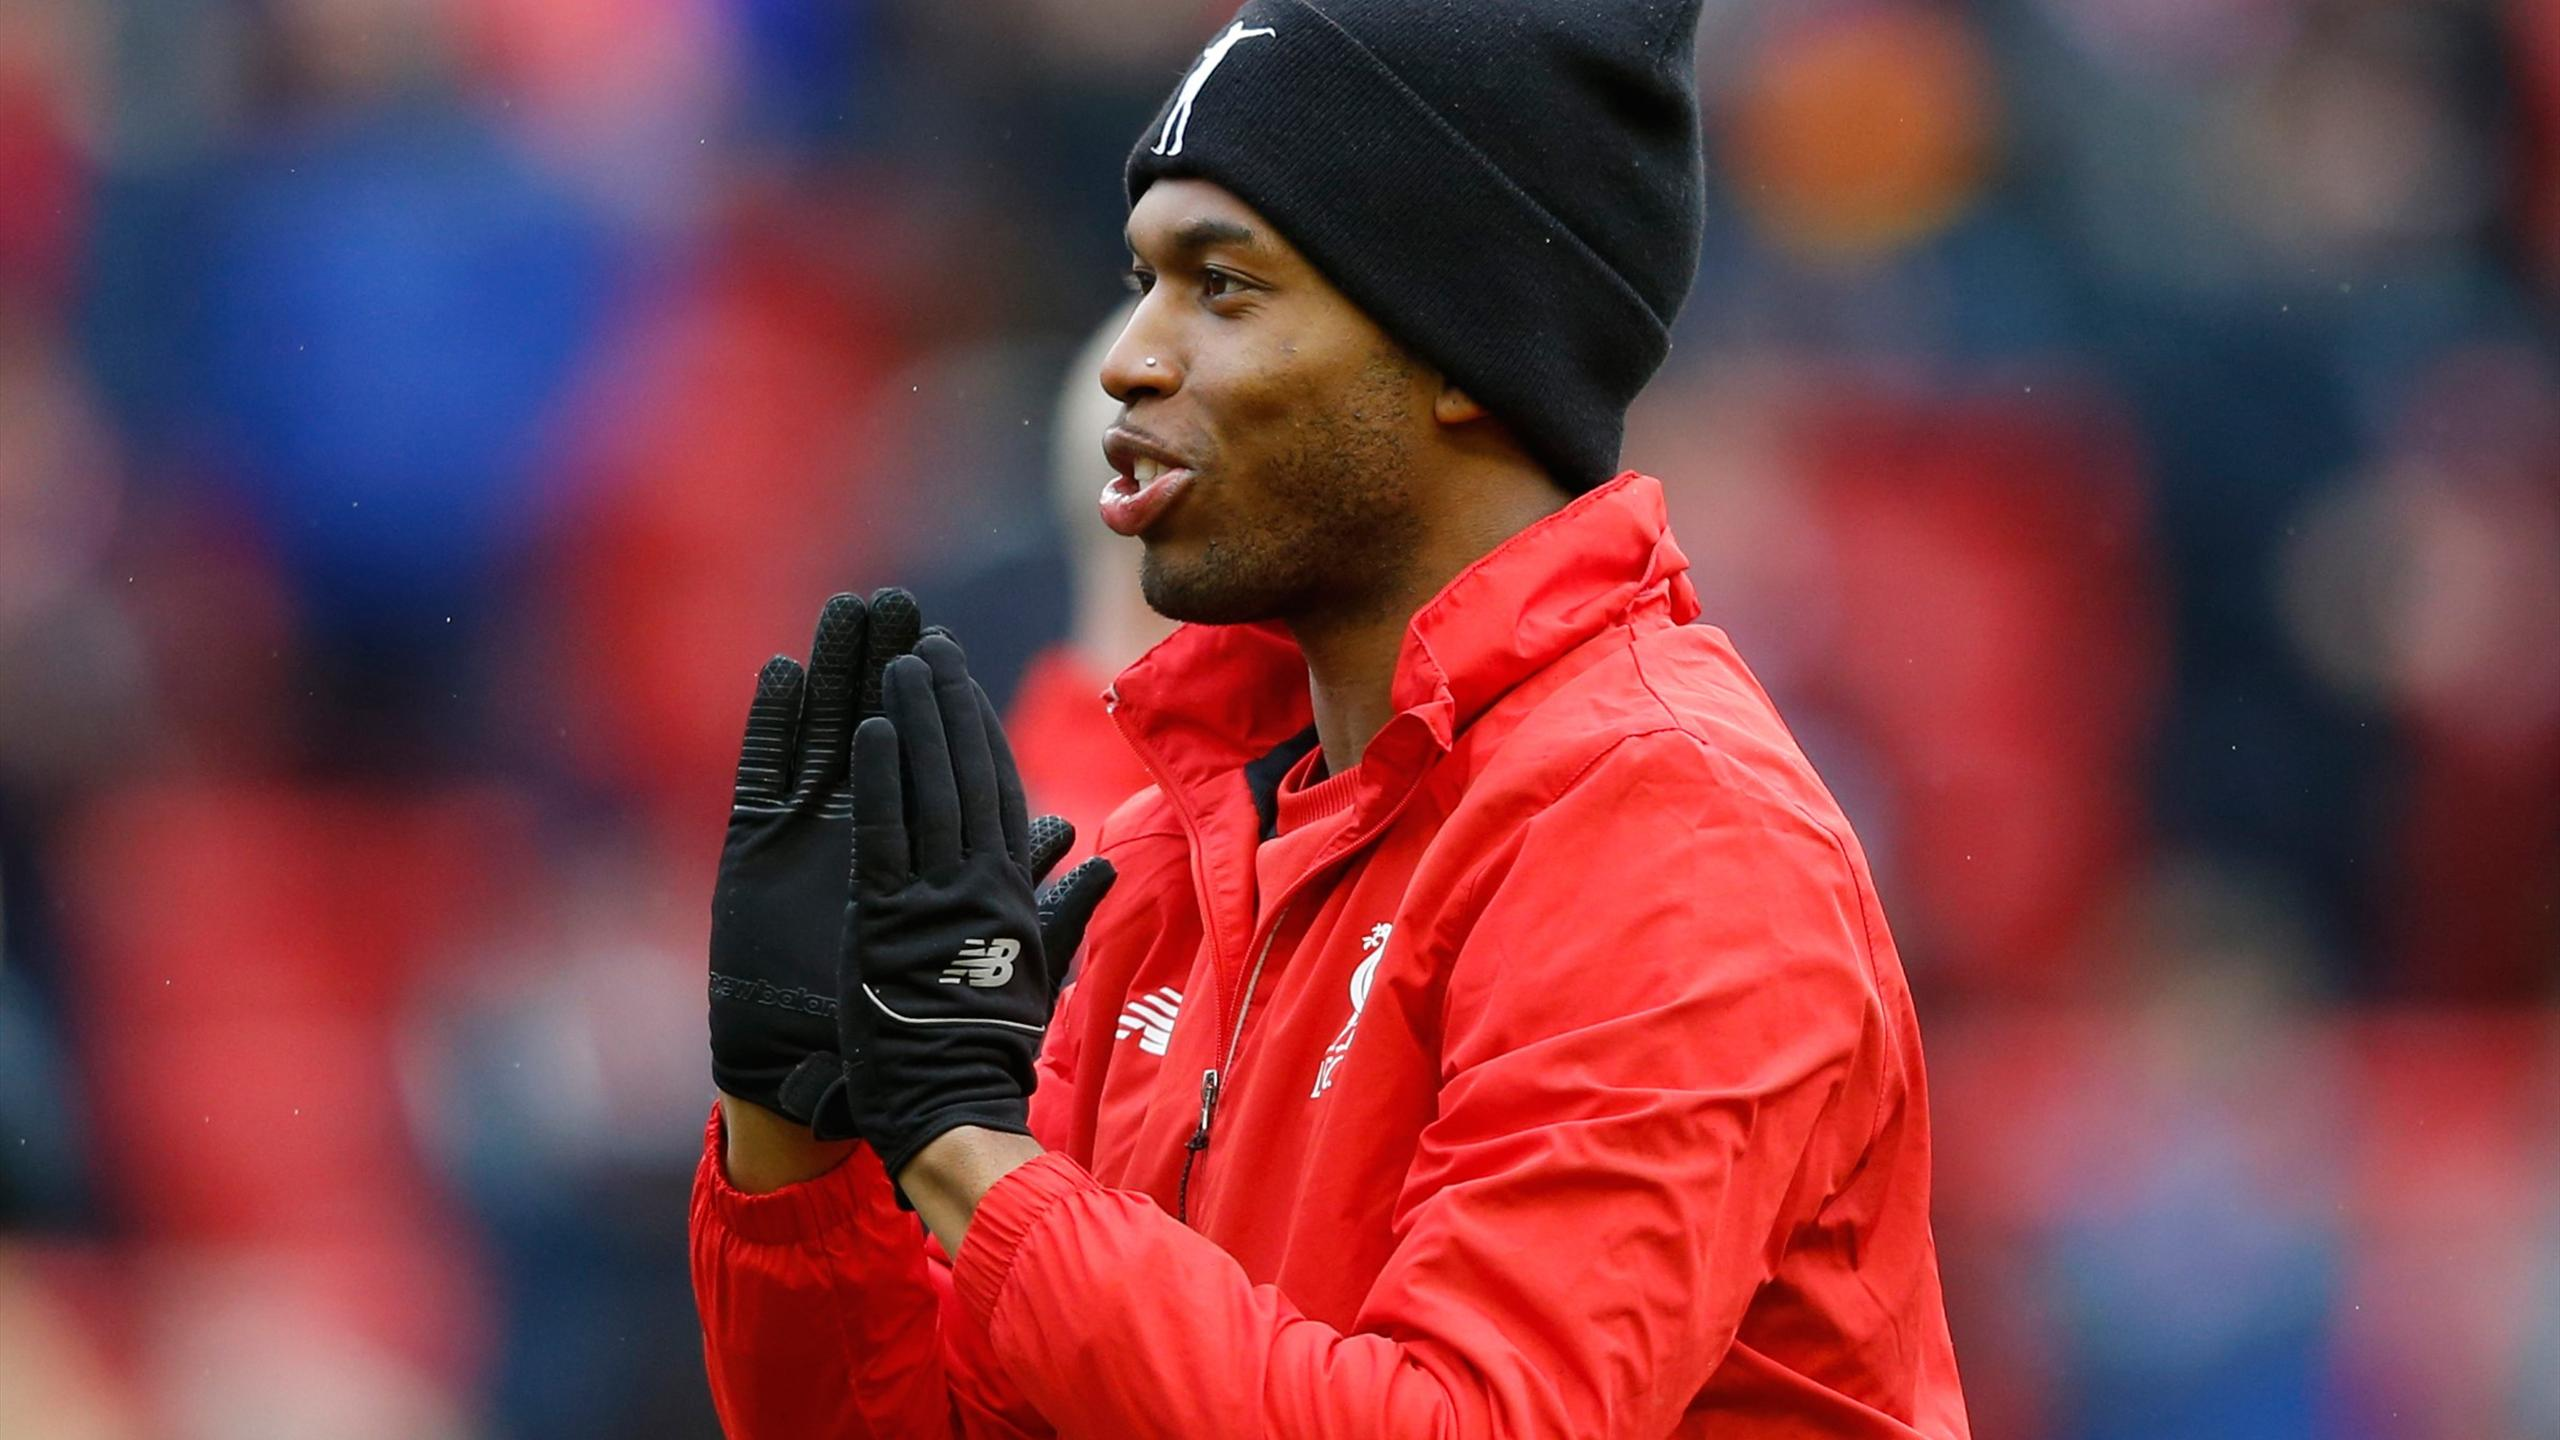 Liverpool's Daniel Sturridge wearing his own branded beanie hat